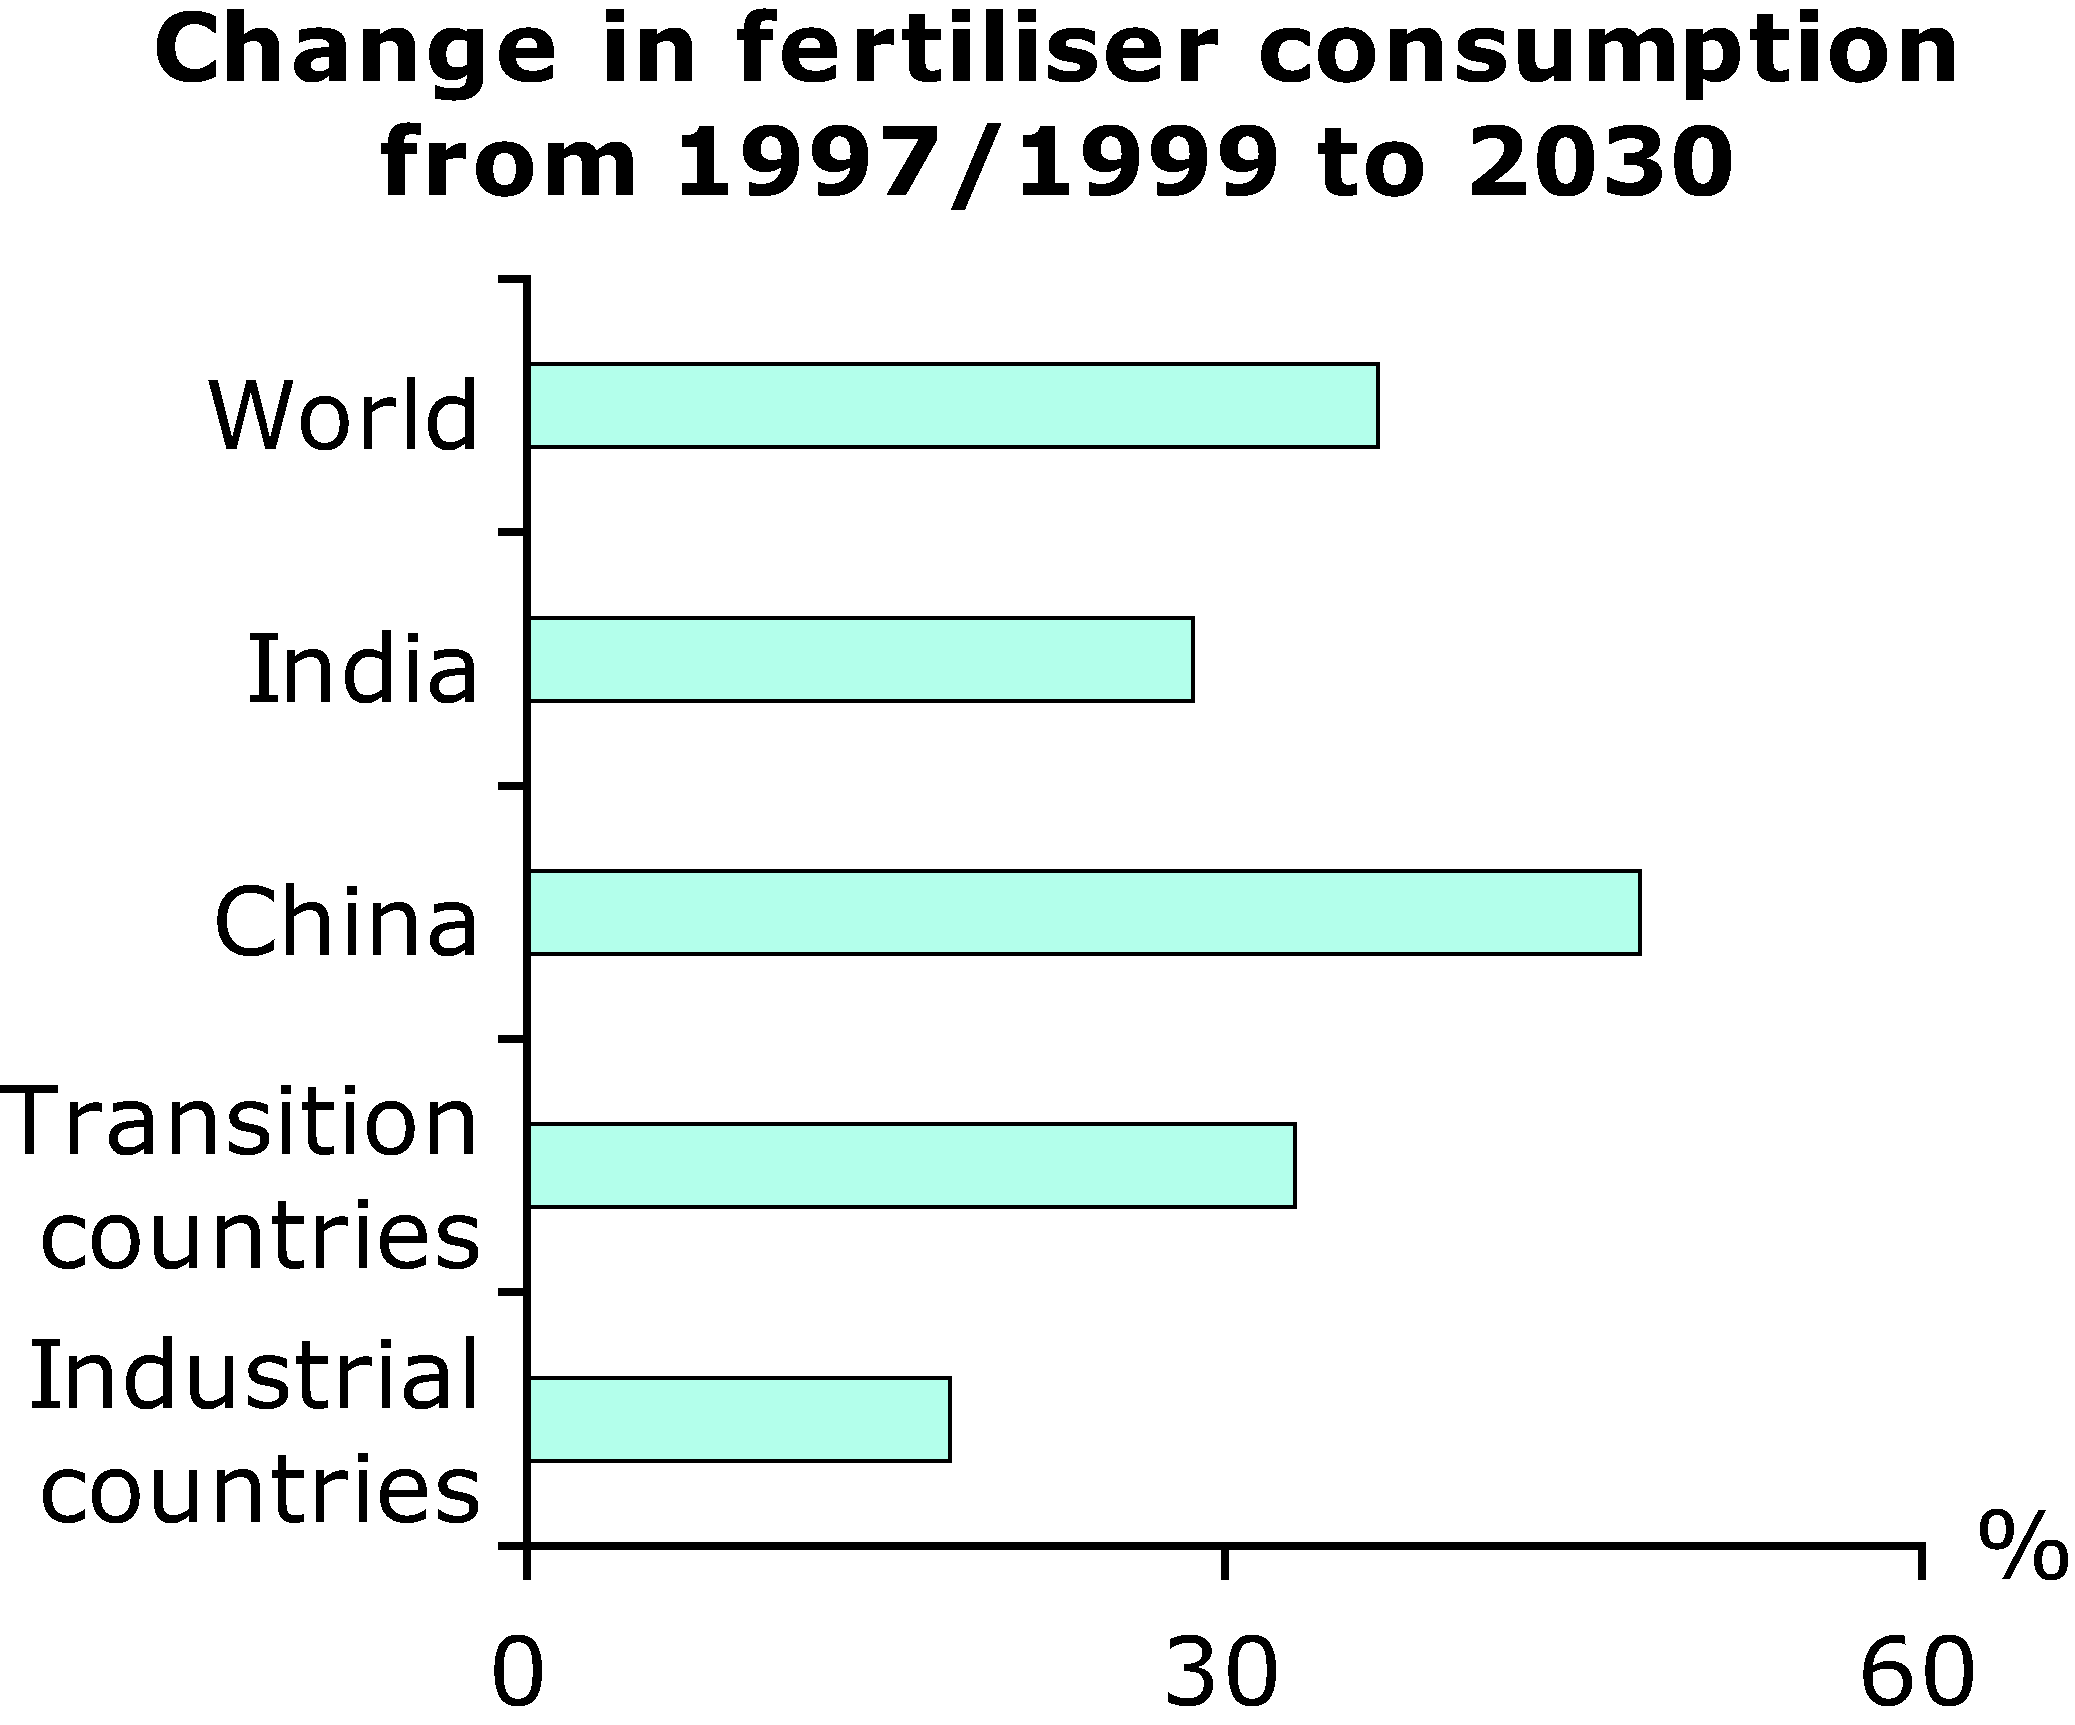 Change in fertiliser consumption from 1997/1999 to 2030